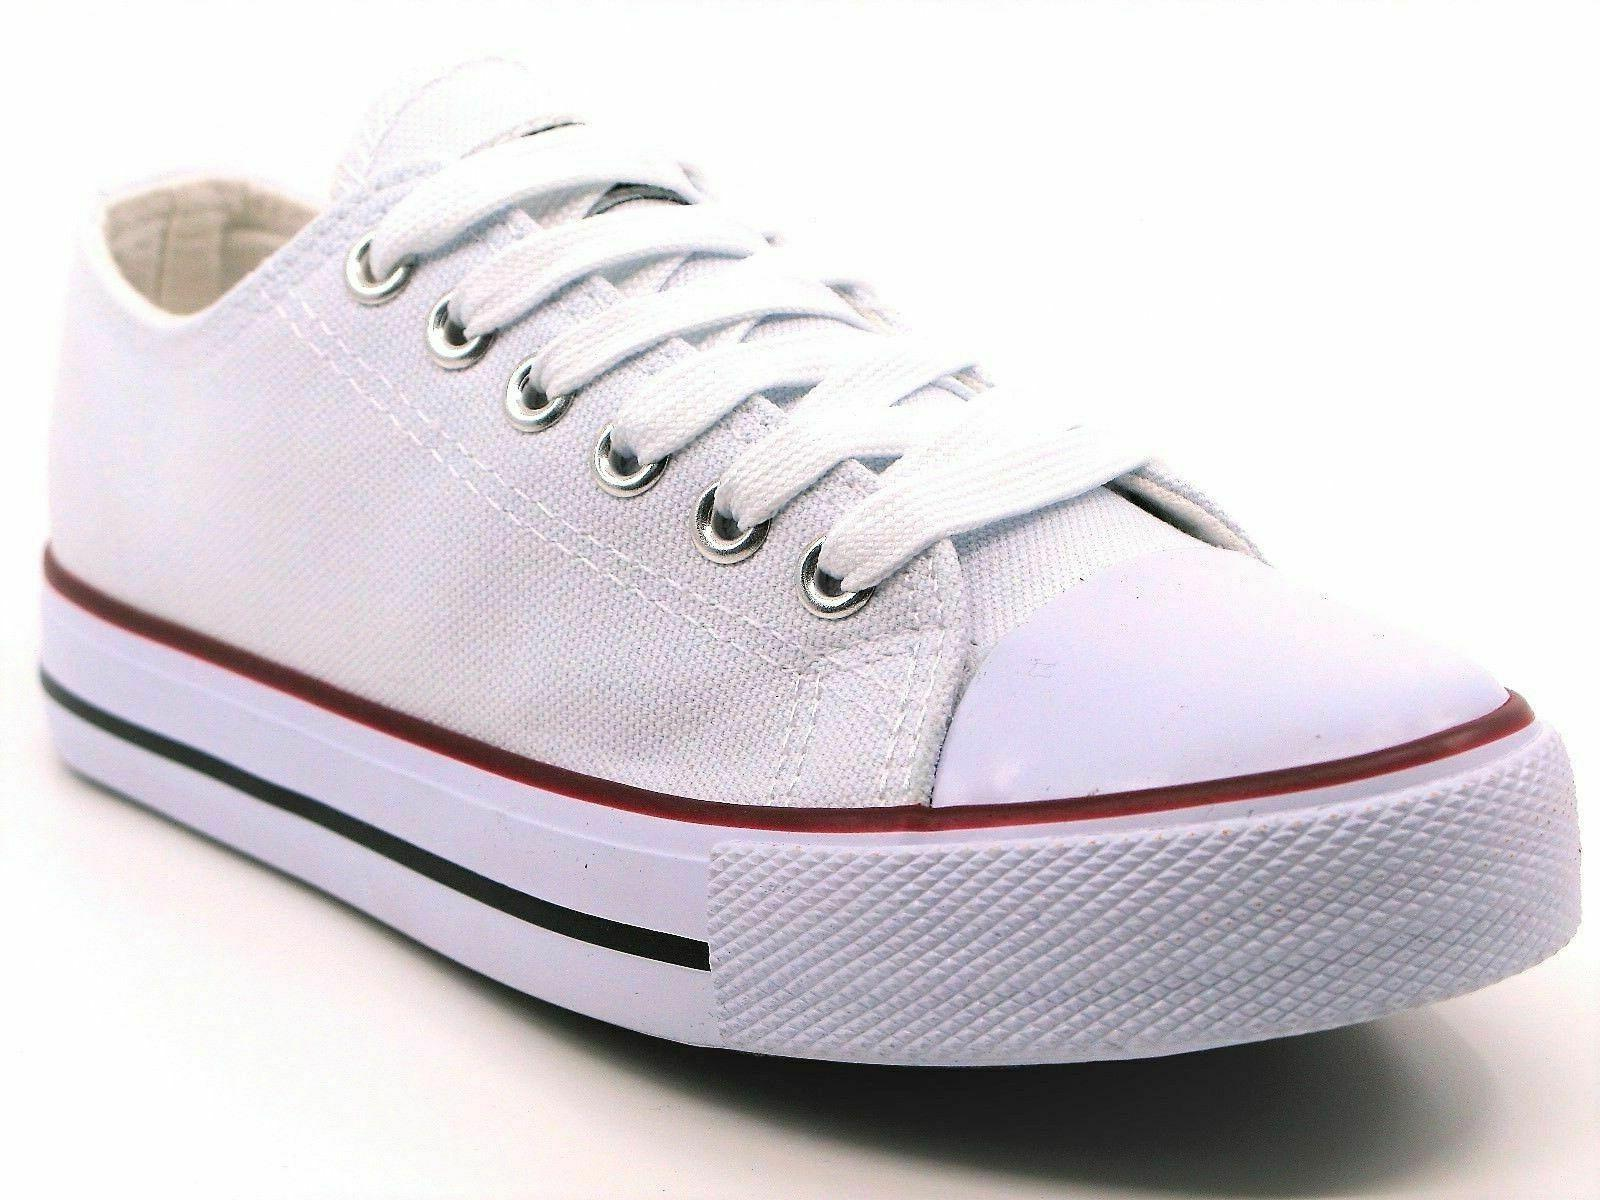 Up Athletic Sneakers 7-12